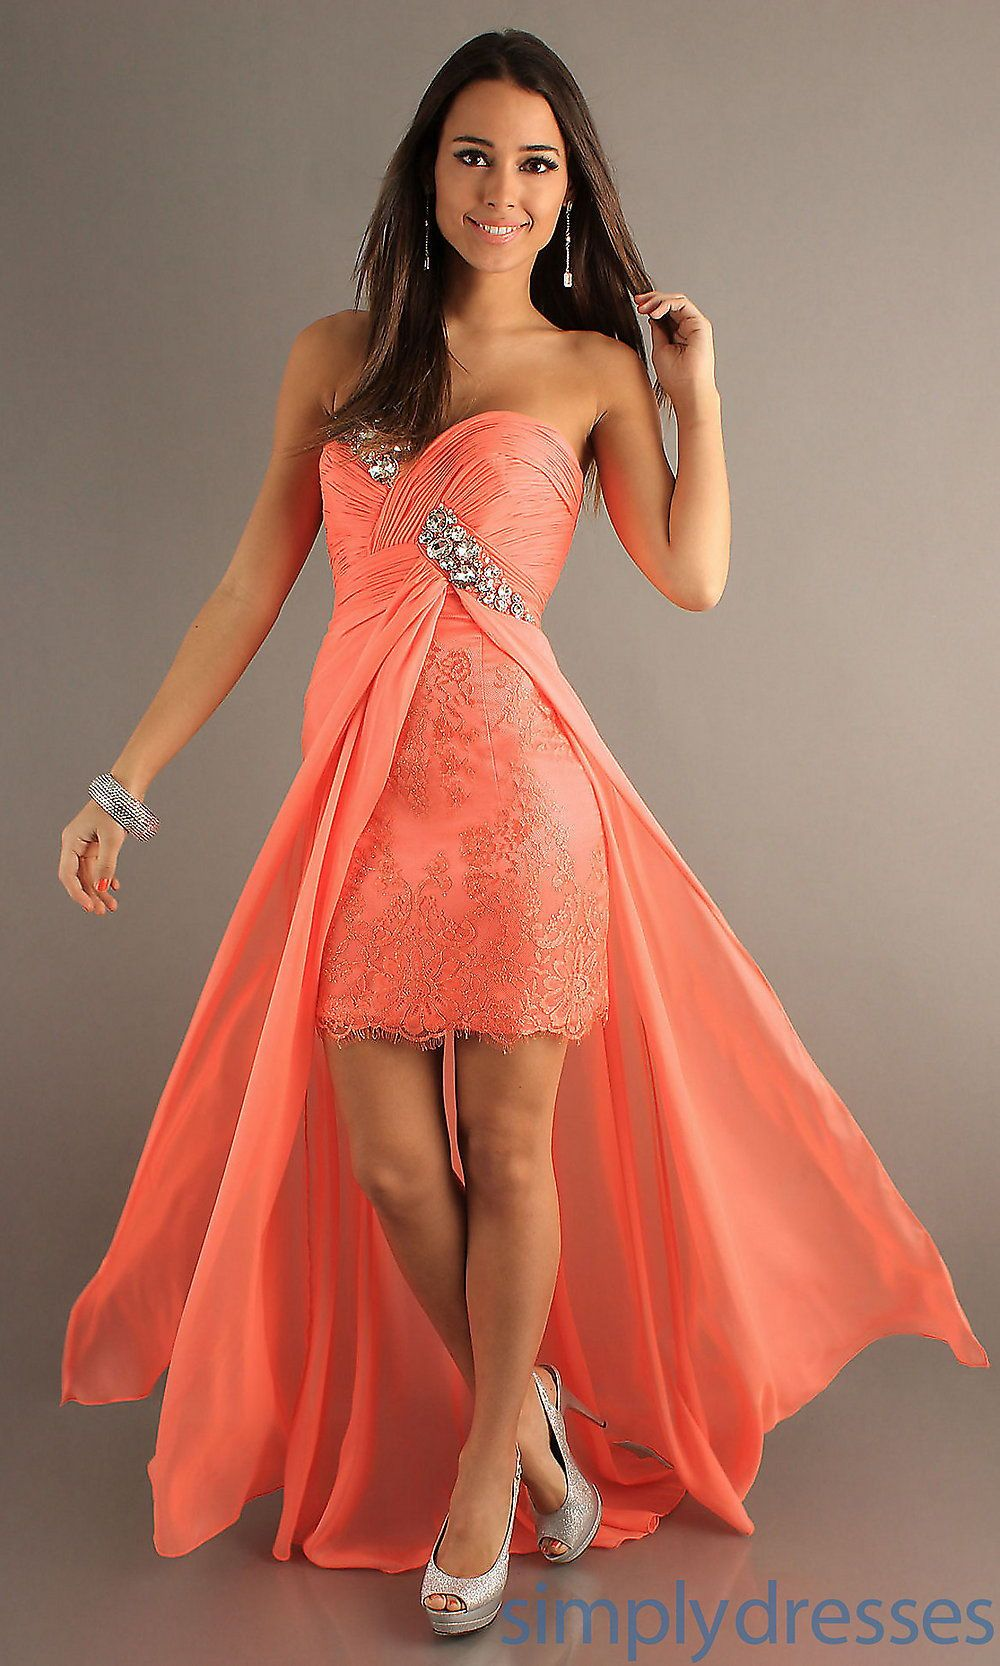 Black Person Bridesmaid Dresses In Coral Color 5 Wedding